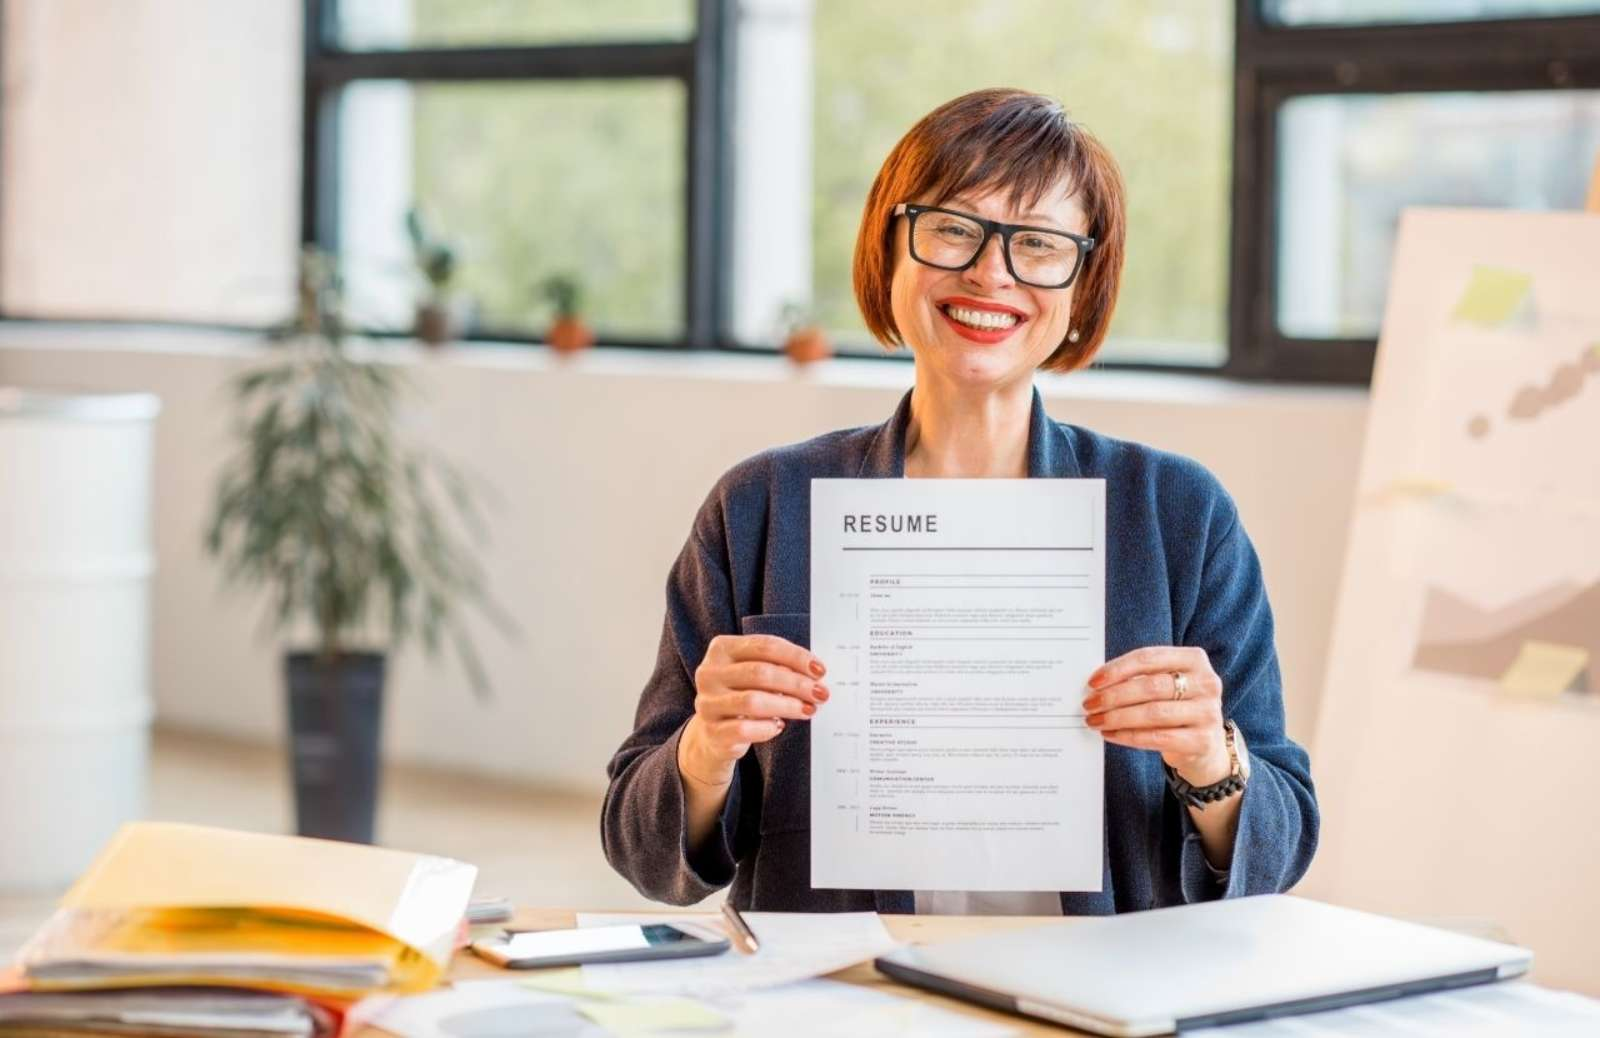 smiling woman holding up resume